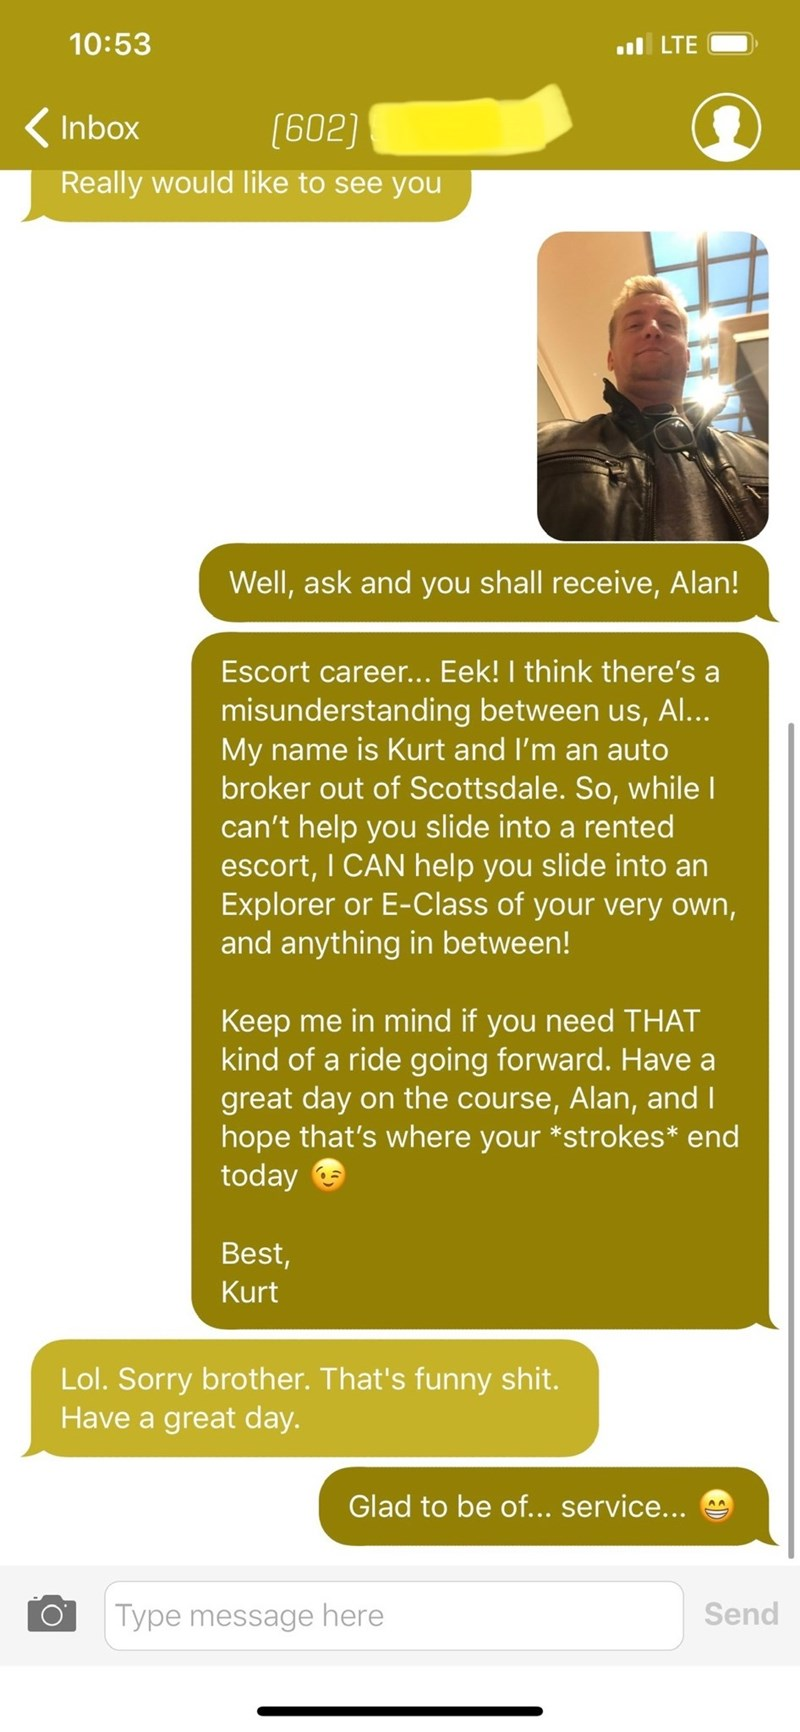 Text - 10:53 ul LTE ( Inbox (602) Really would like to see you Well, ask and you shall receive, Alan! Escort career... Eek! I think there's a misunderstanding between us, Al... My name is Kurt and I'm an auto broker out of Scottsdale. So, while I can't help you slide into a rented escort, I CAN help you slide into an Explorer or E-Class of your very own, and anything in between! Keep me in mind if you need THAT kind of a ride going forward. Have a great day on the course, Alan, and I hope that's